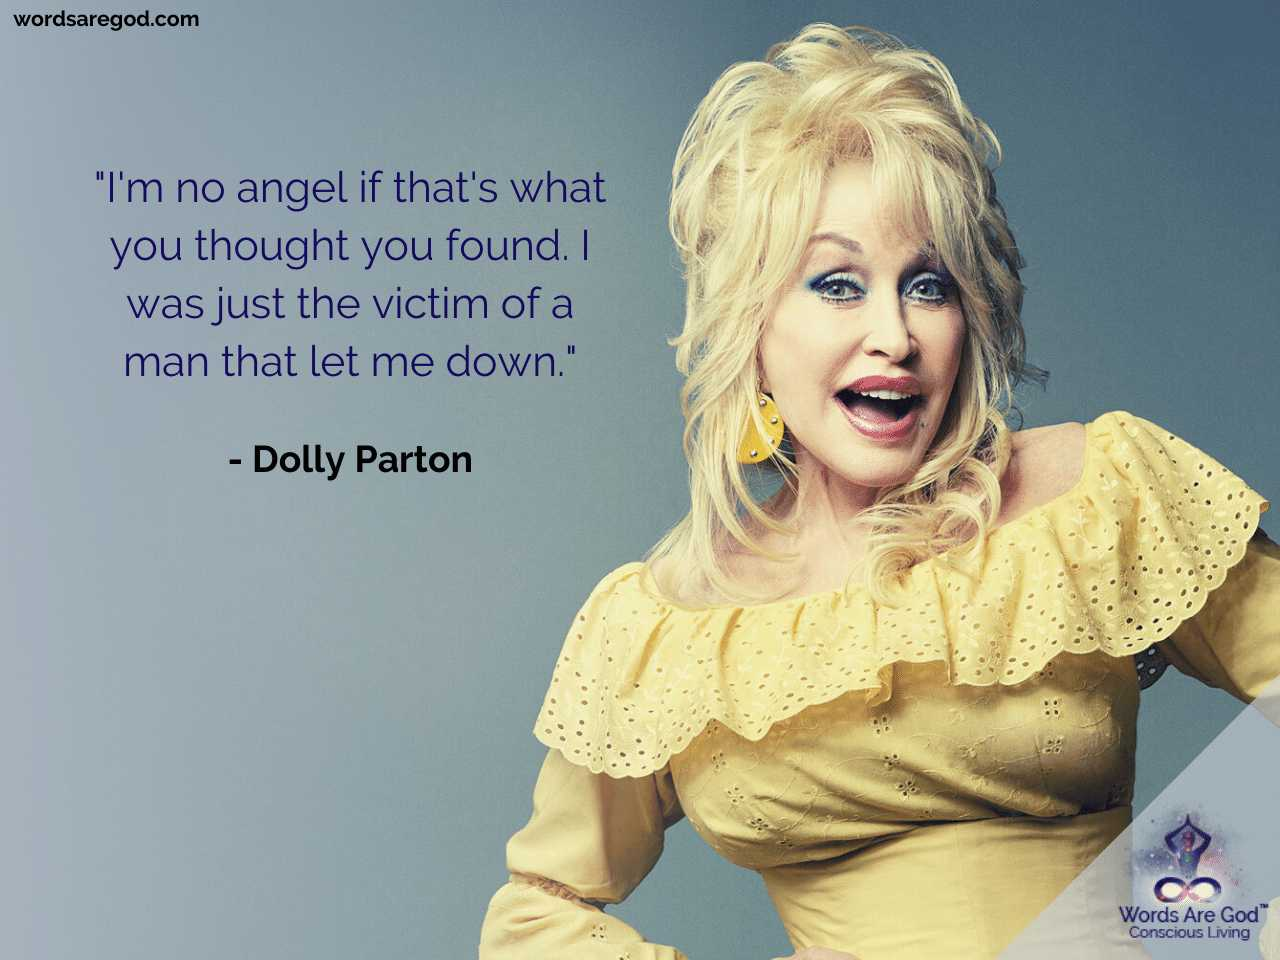 Dolly Parton Quotes Life Quotes Change Life Quotes Images Music Quotes Pinterest